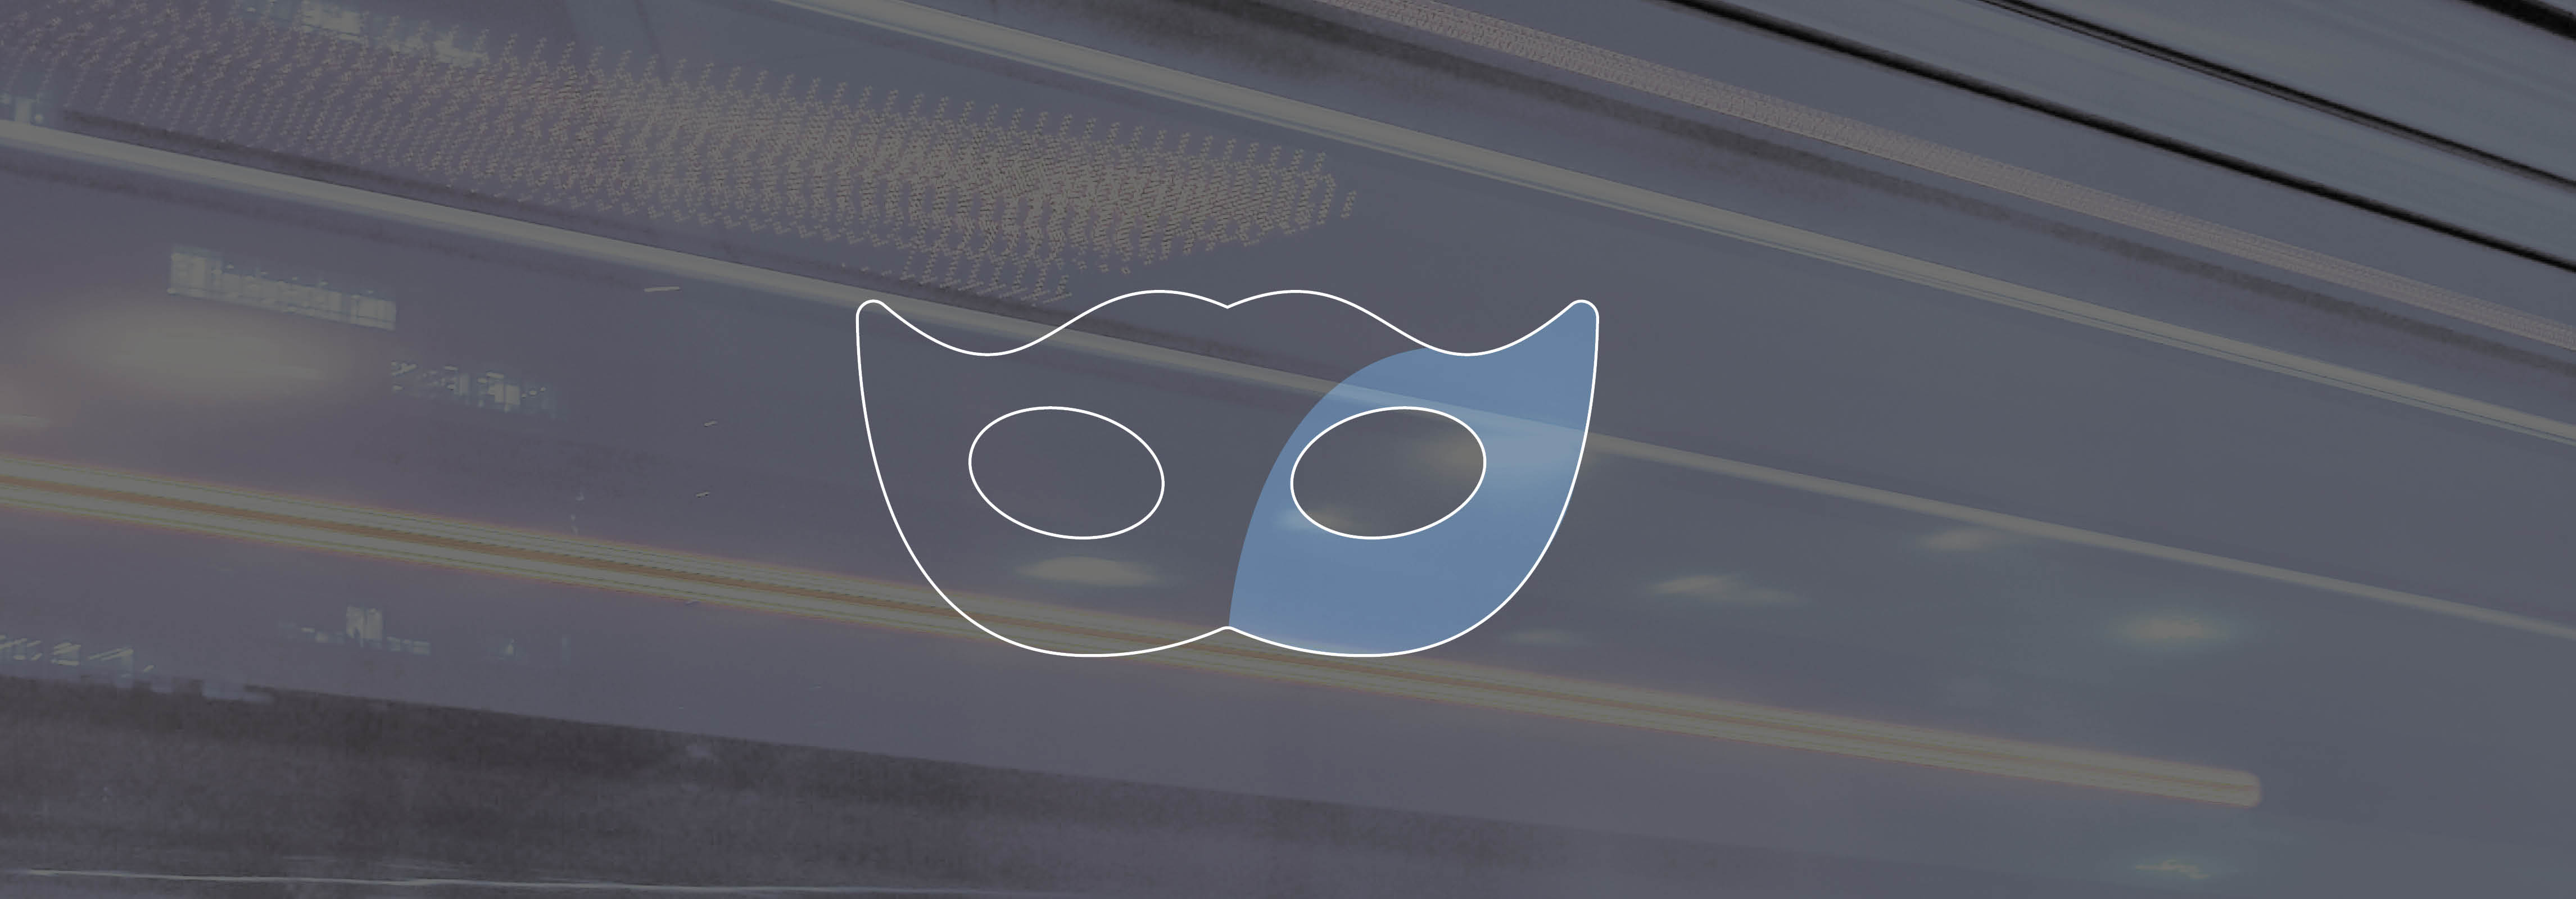 Mask Icon on flashlights in the background